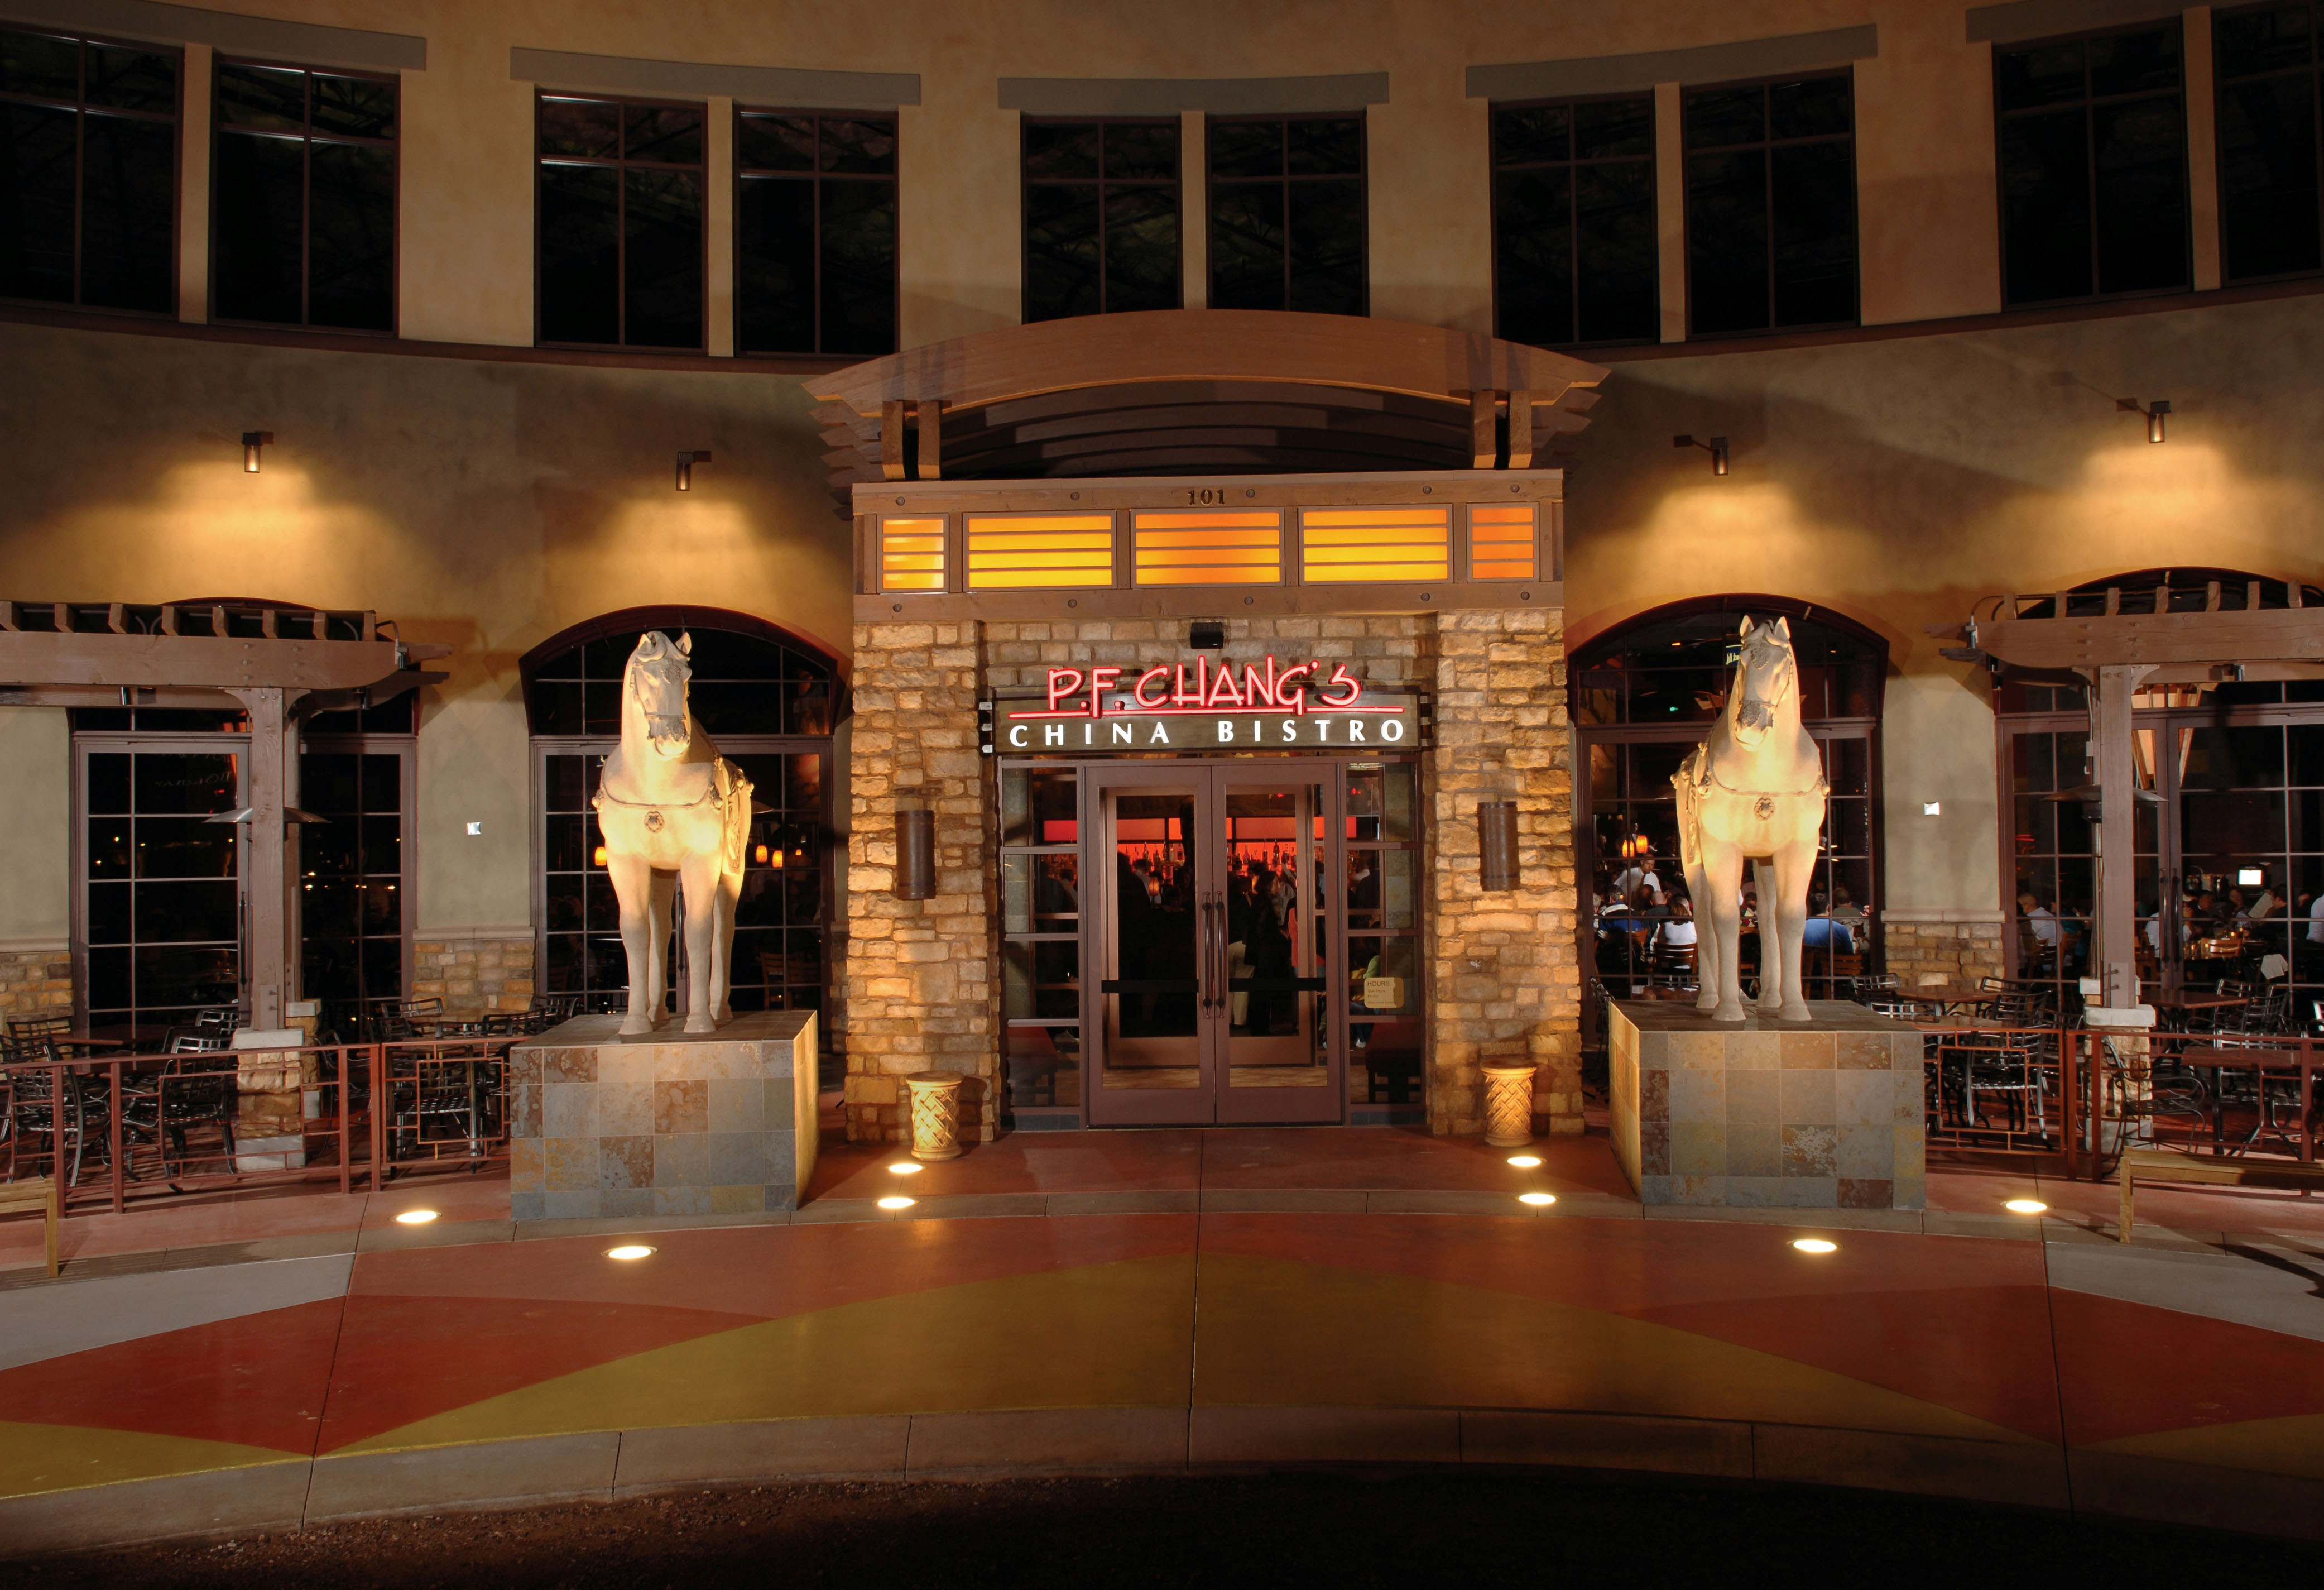 Pf Chang S China Bistro An Ethnic Culinary Adventure